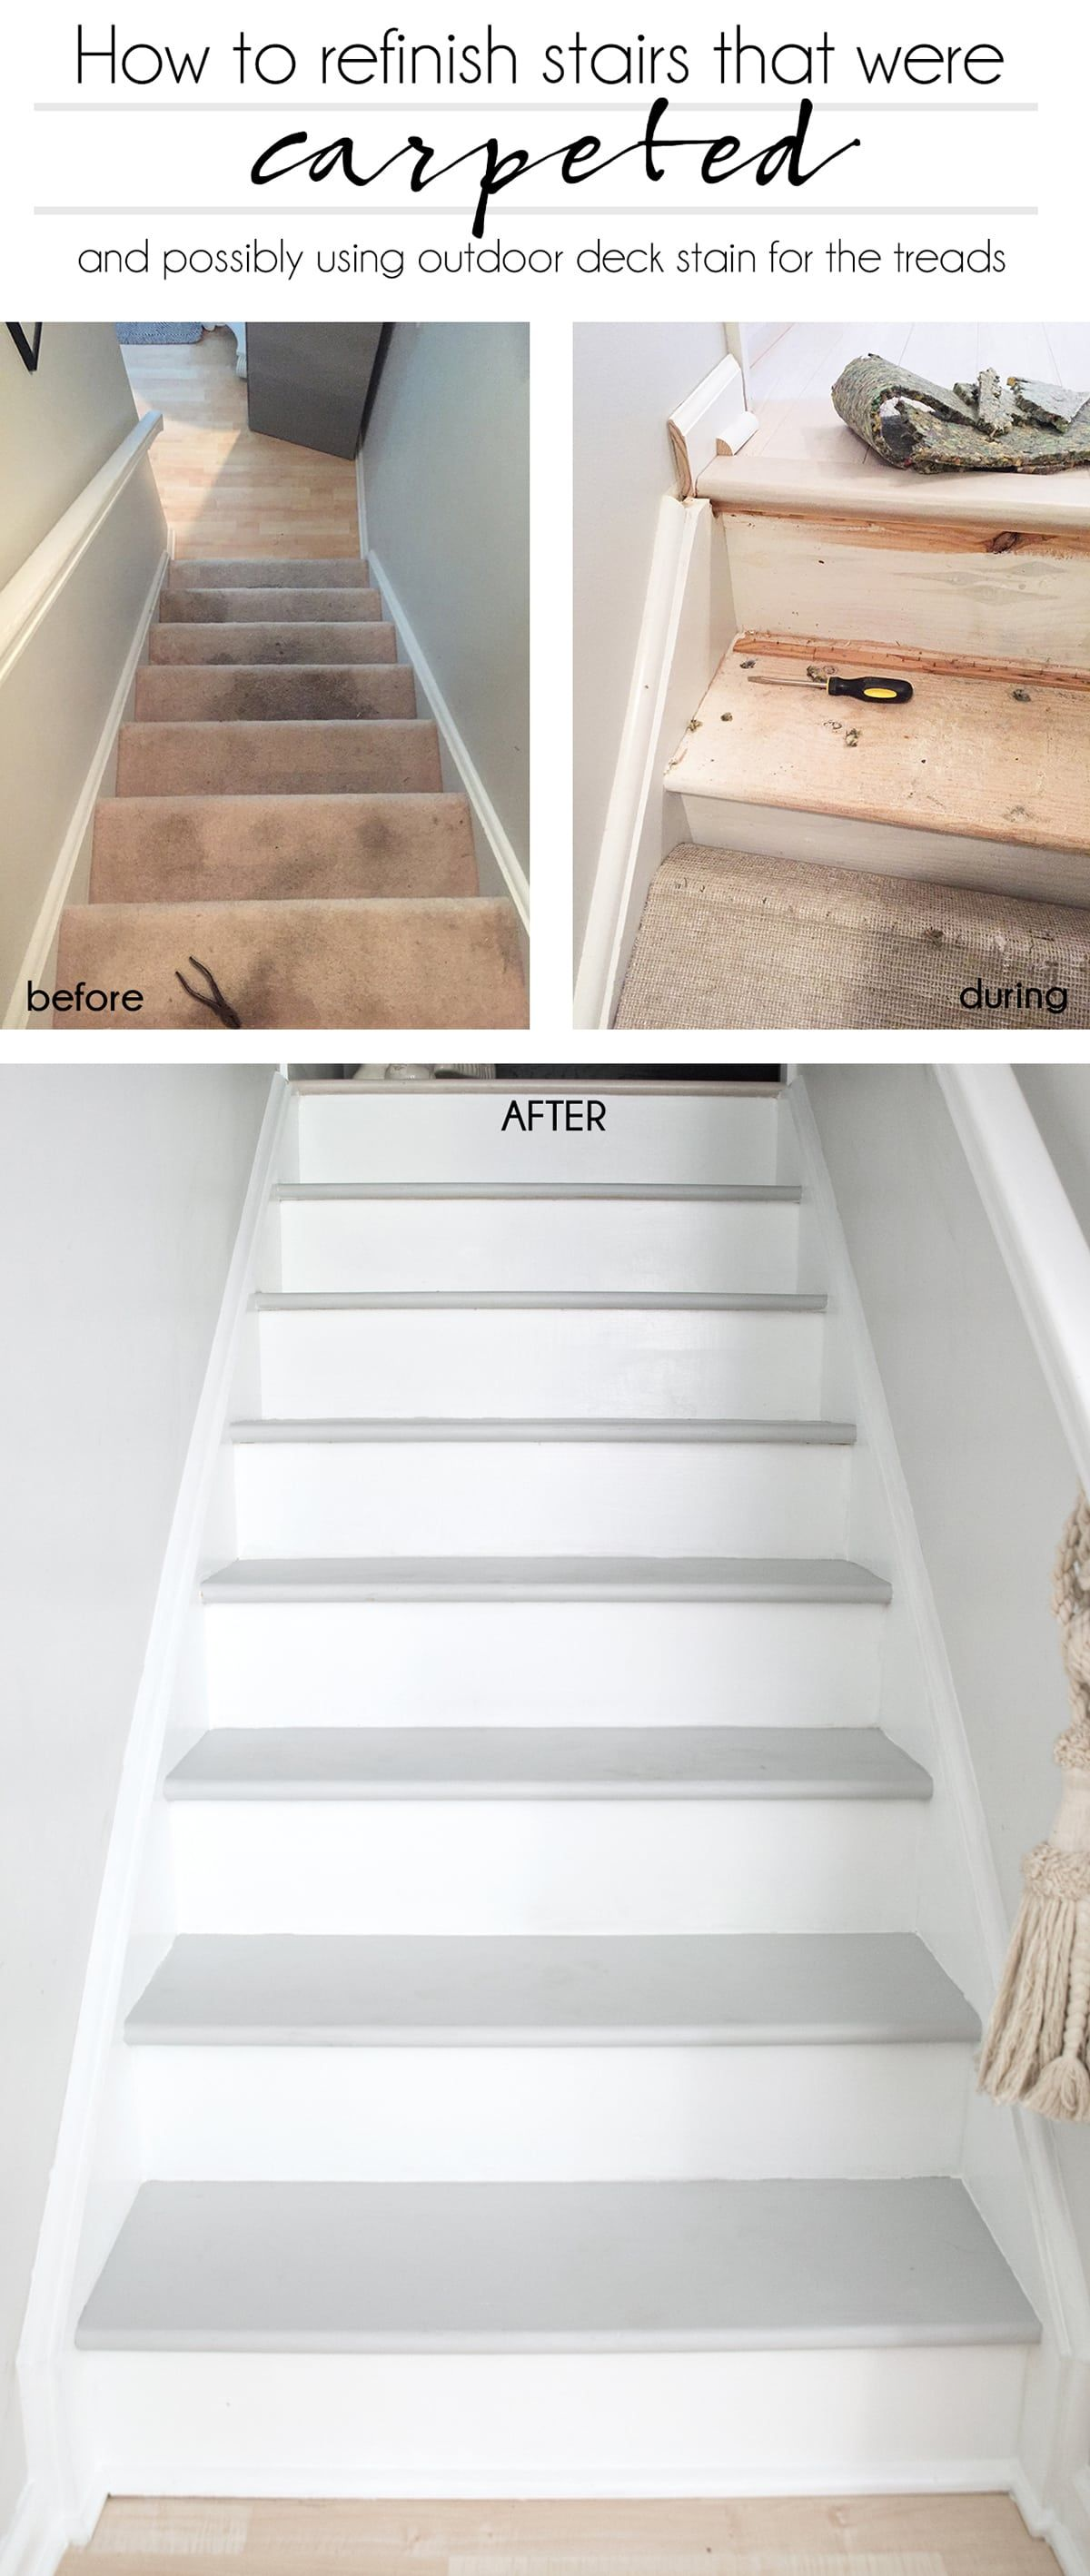 How To Refinish Stairs That Were Carpeted Refinish Stairs Diy